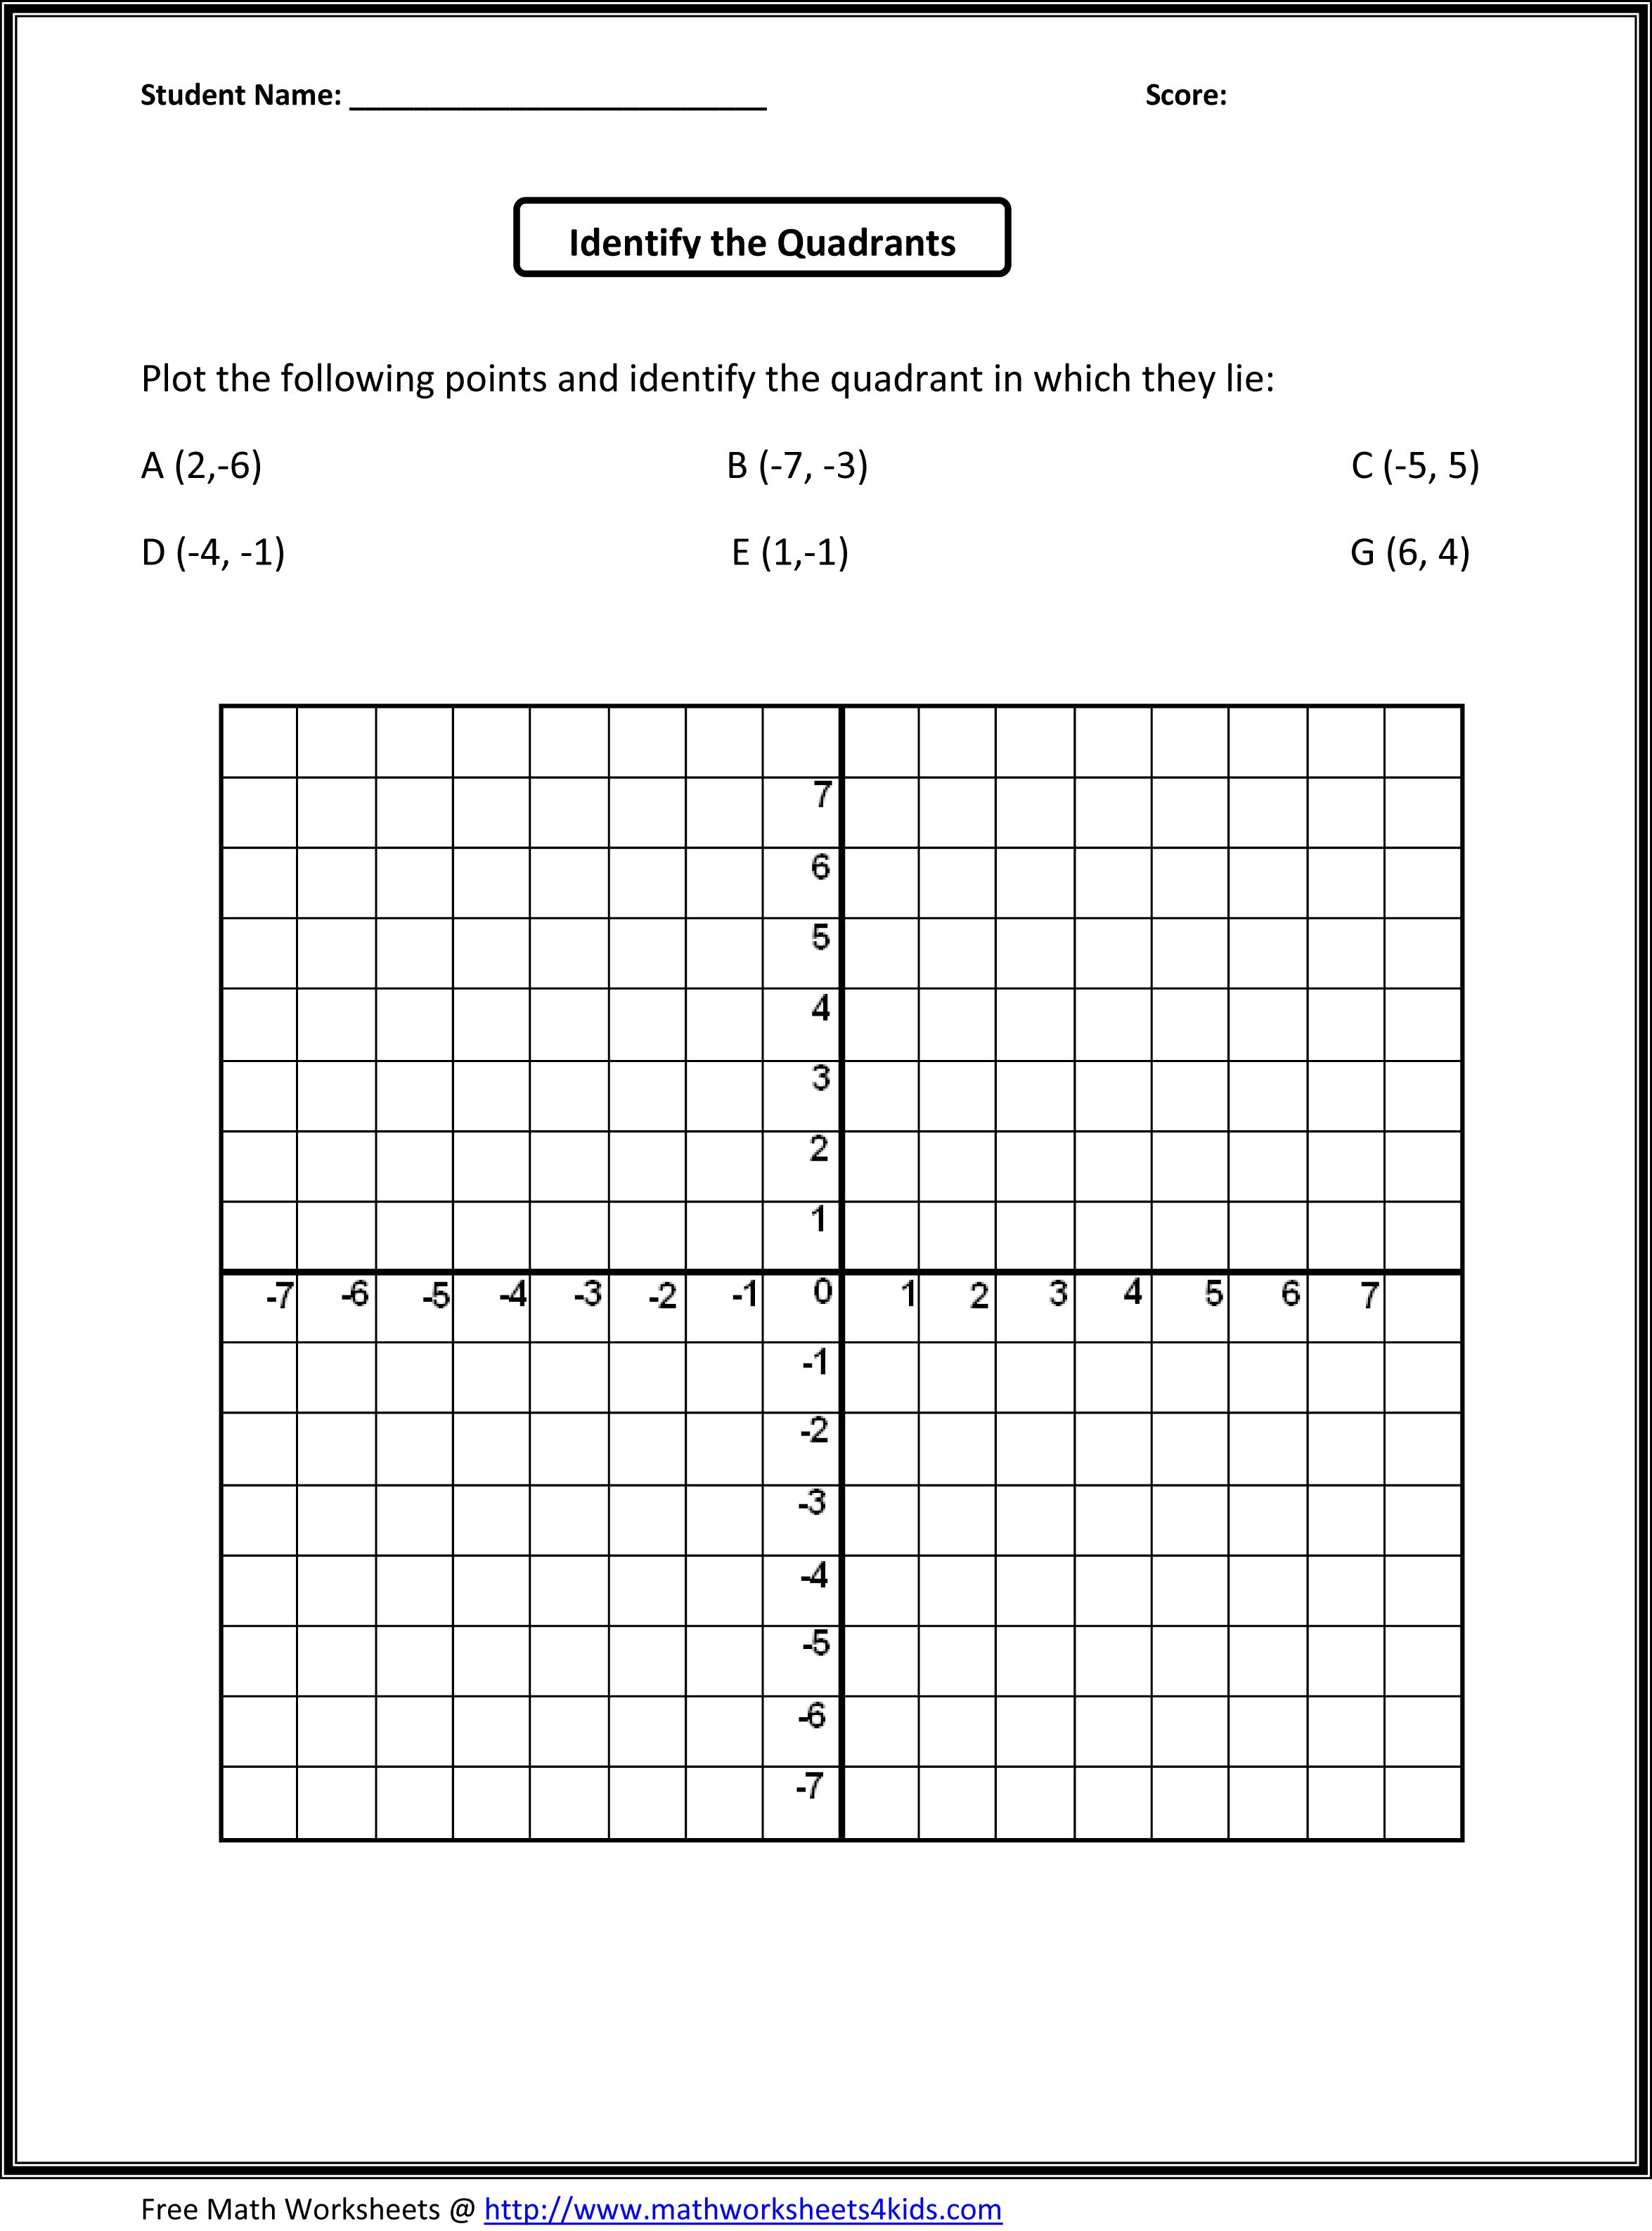 Worksheets Math Plotting Points Worksheets 5th grade math worksheet school pinterest worksheets worksheet